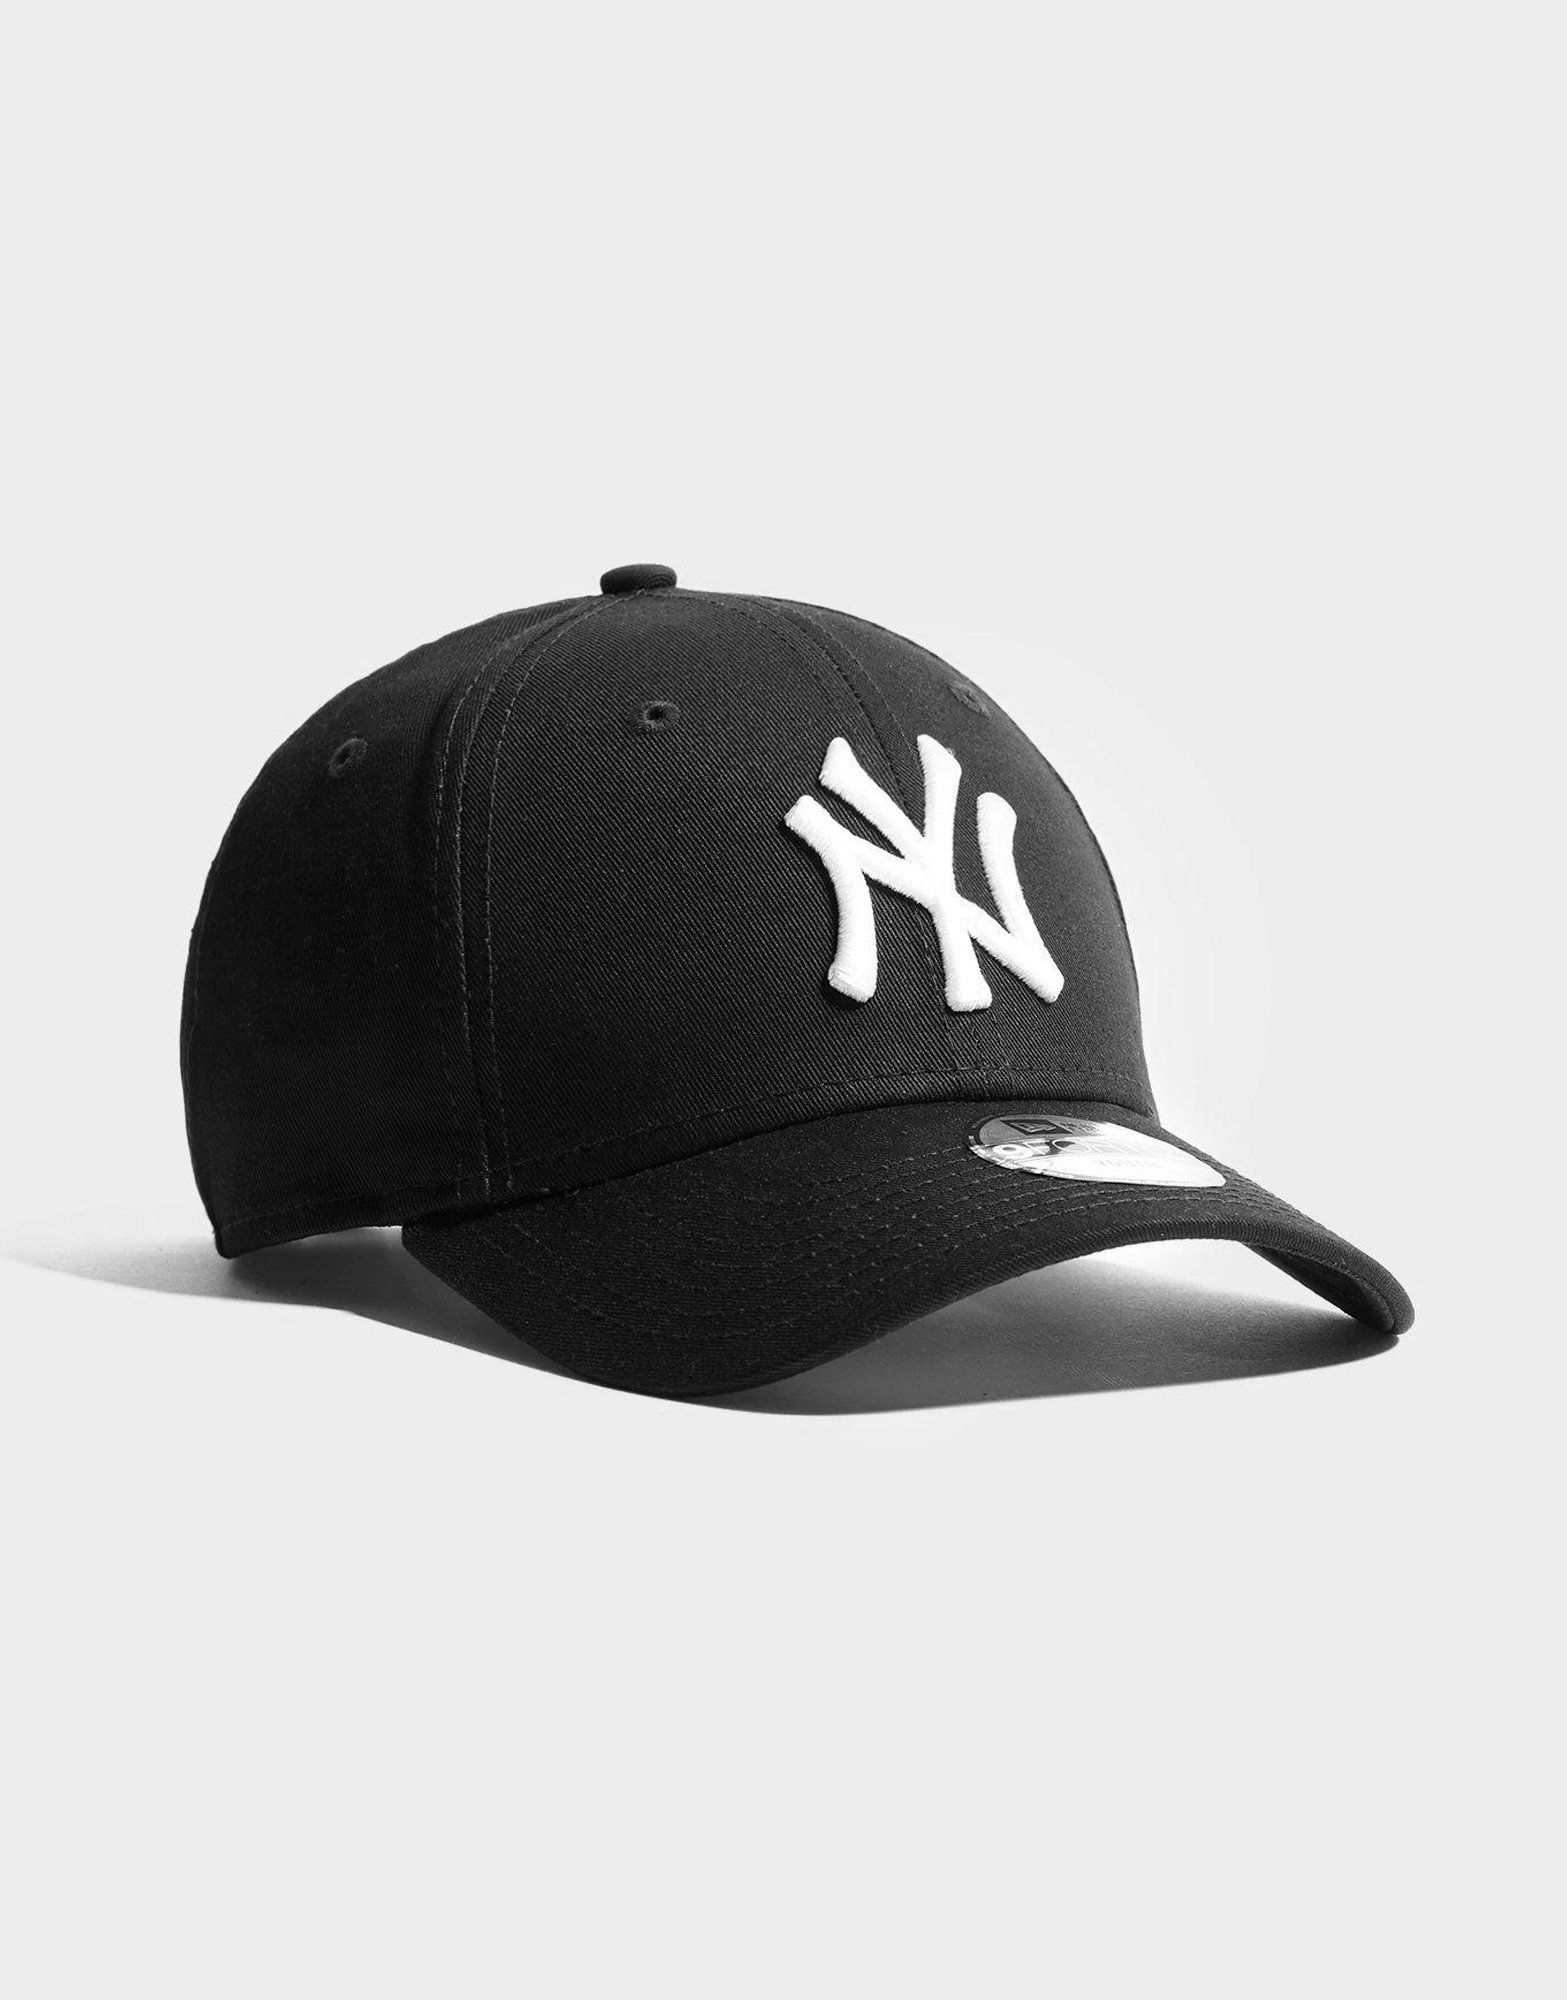 New Era gorra 9FORTY MLB New York Yankees júnior